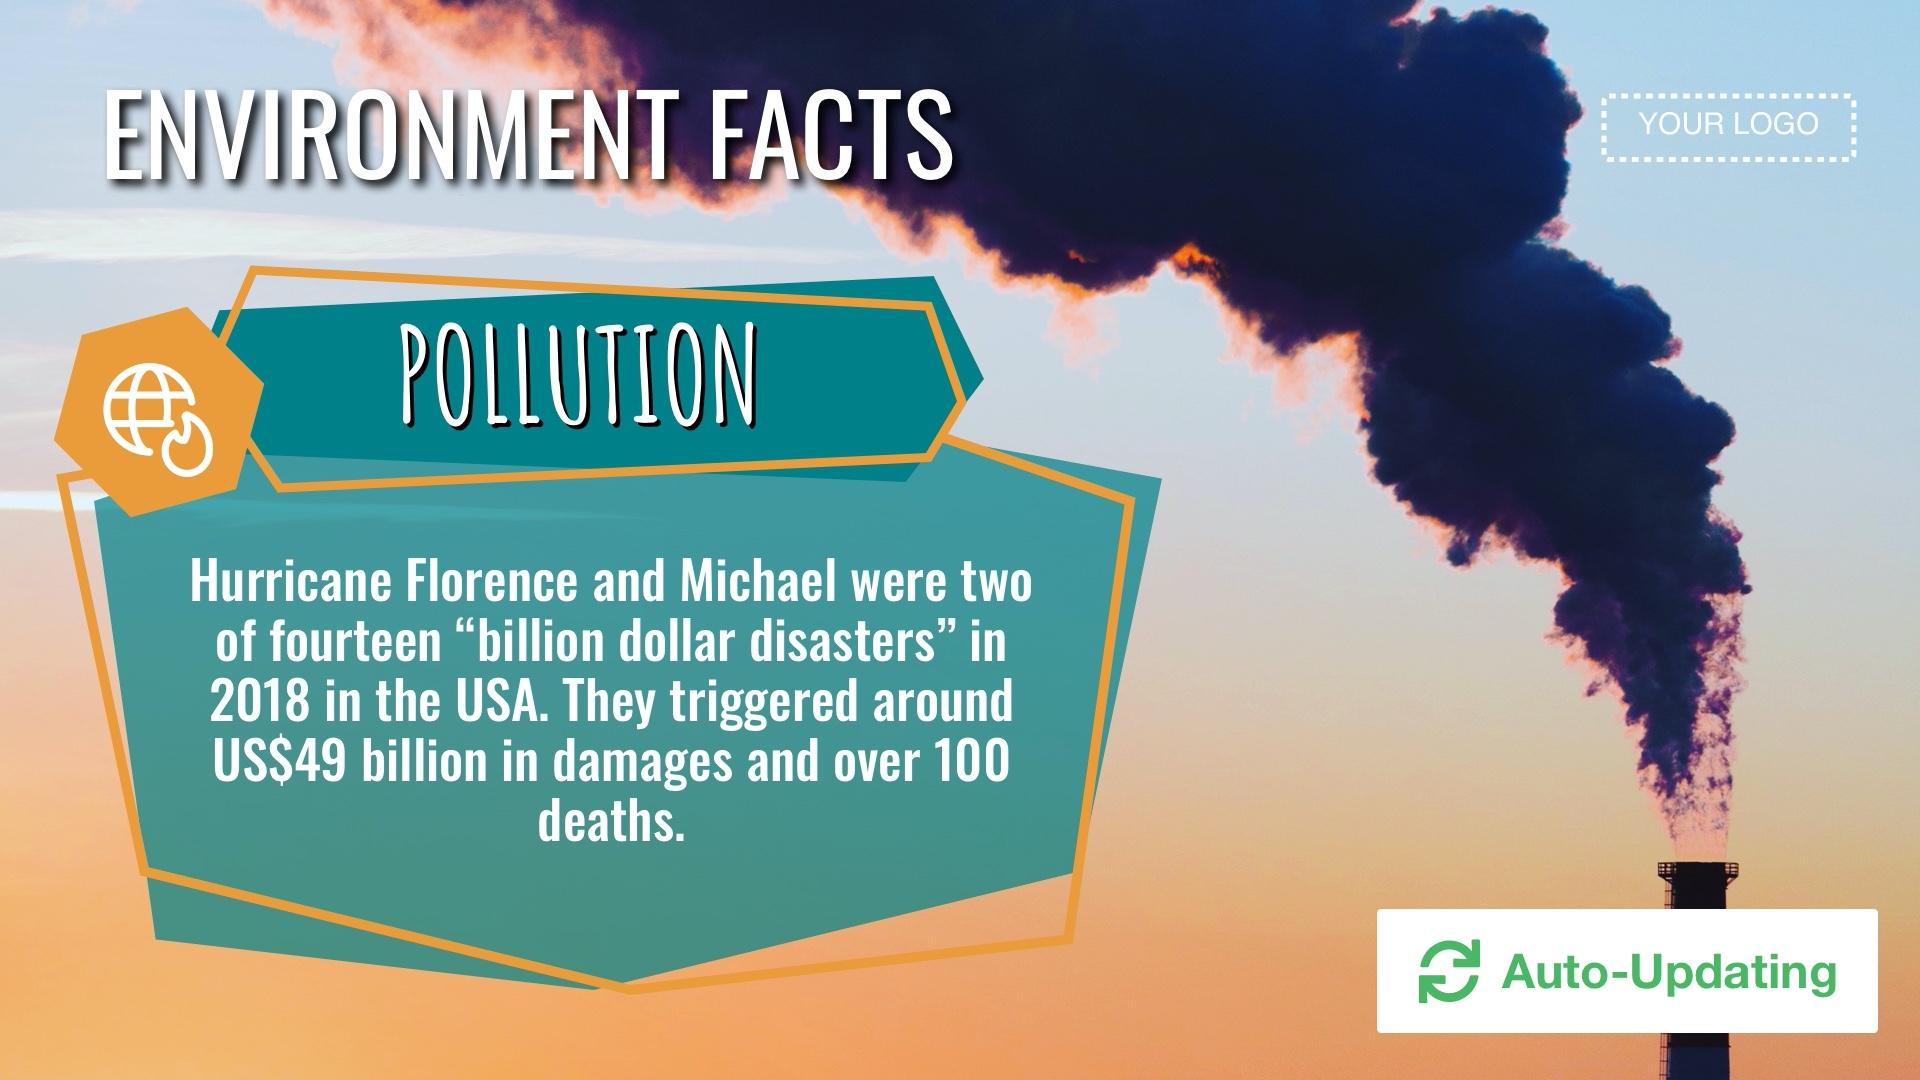 Environmental Issue Facts Digital Signage Template